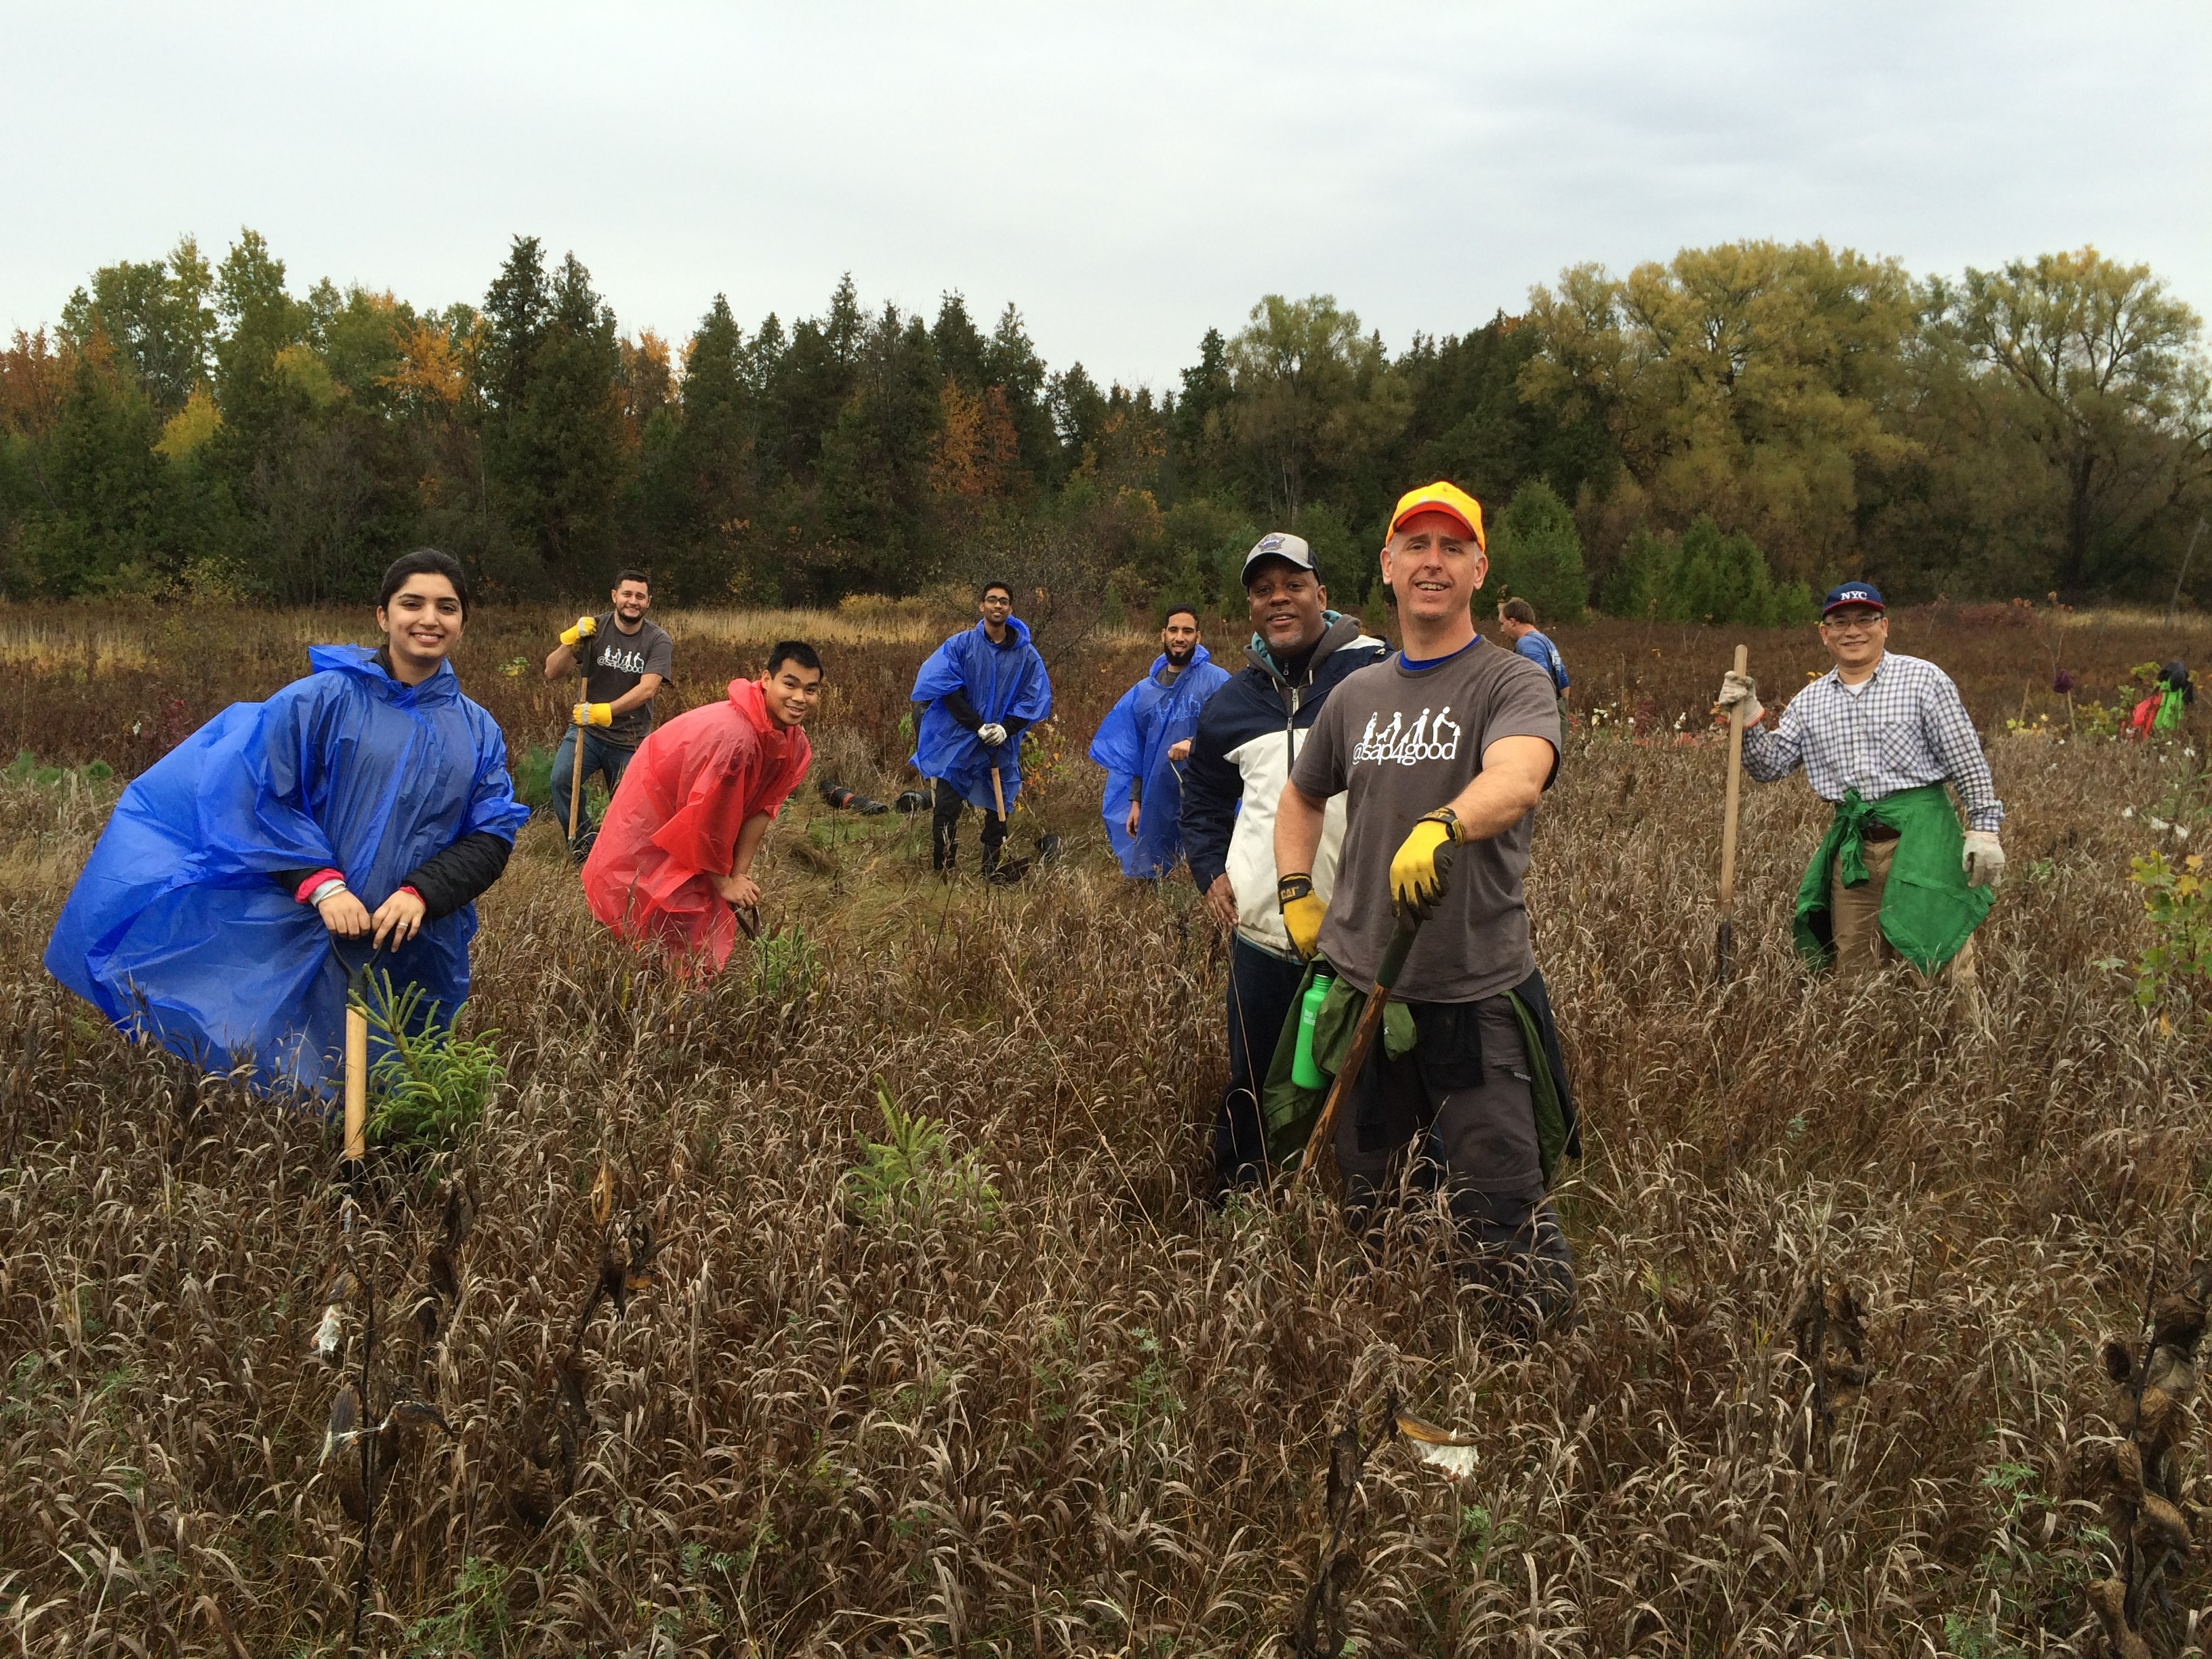 SAP Canada employees planting trees with Ontario Streams